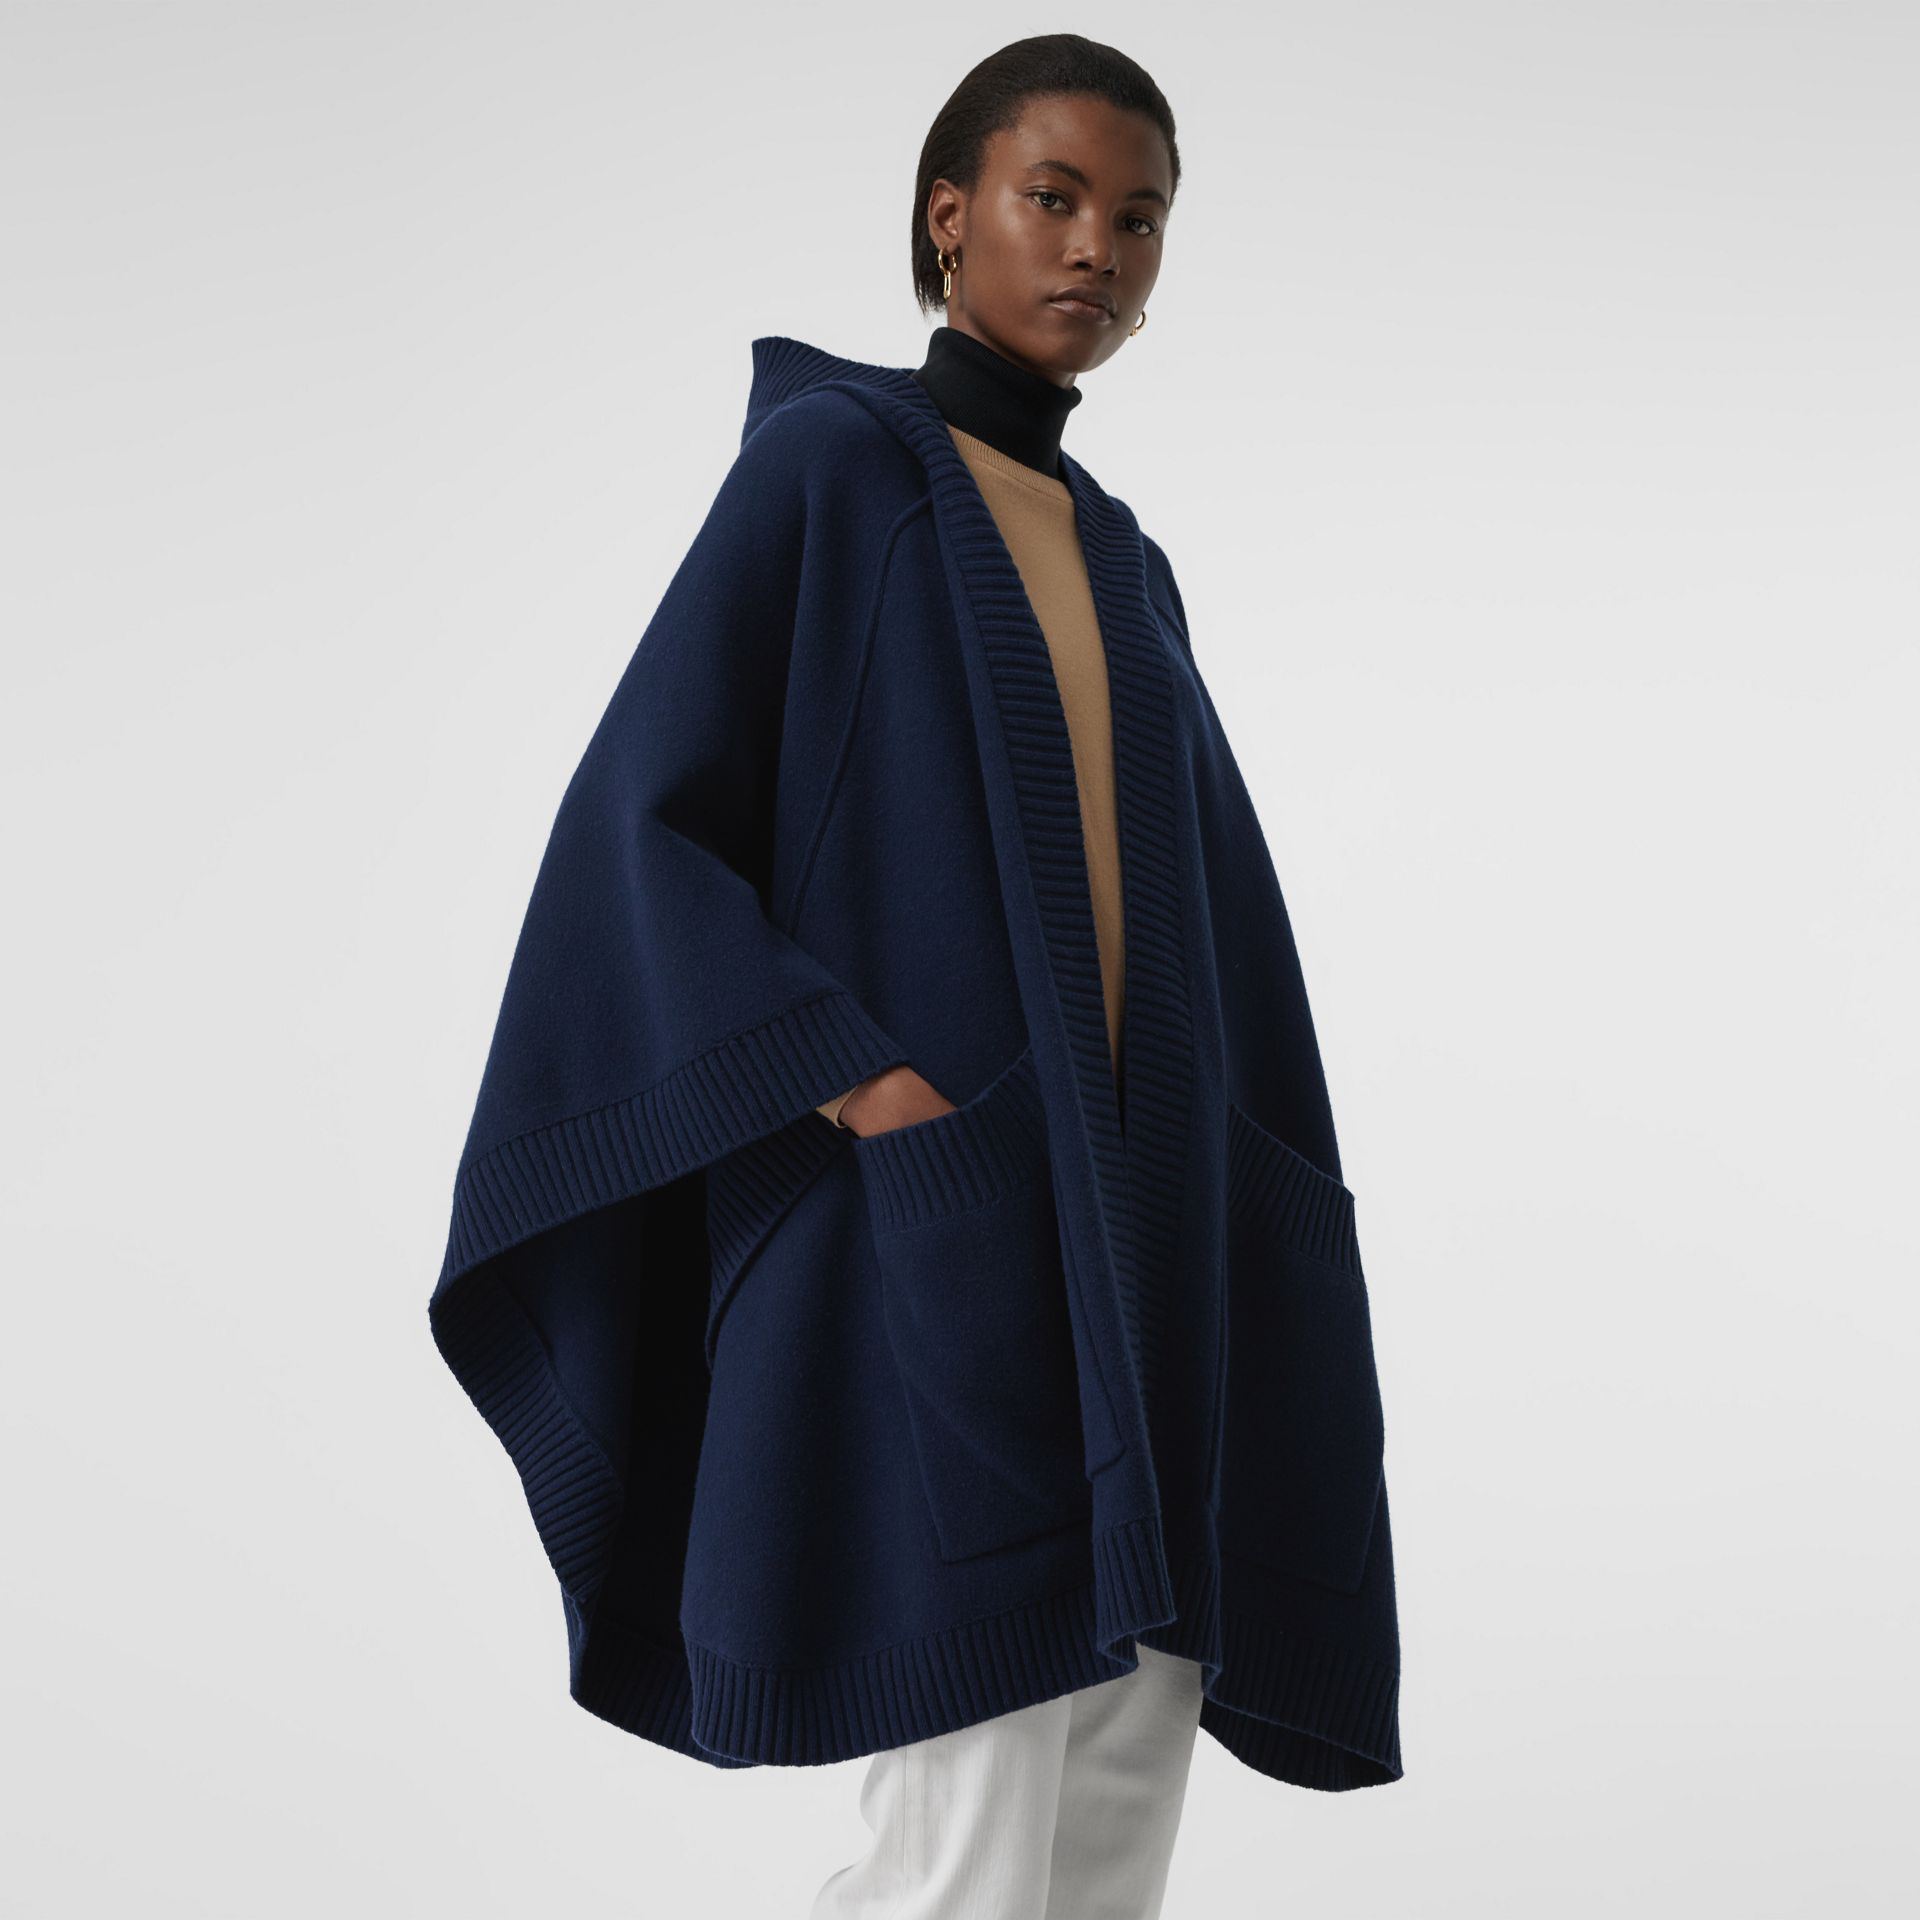 Crest Wool Blend Jacquard Hooded Cape in Navy - Women | Burberry United States - gallery image 2